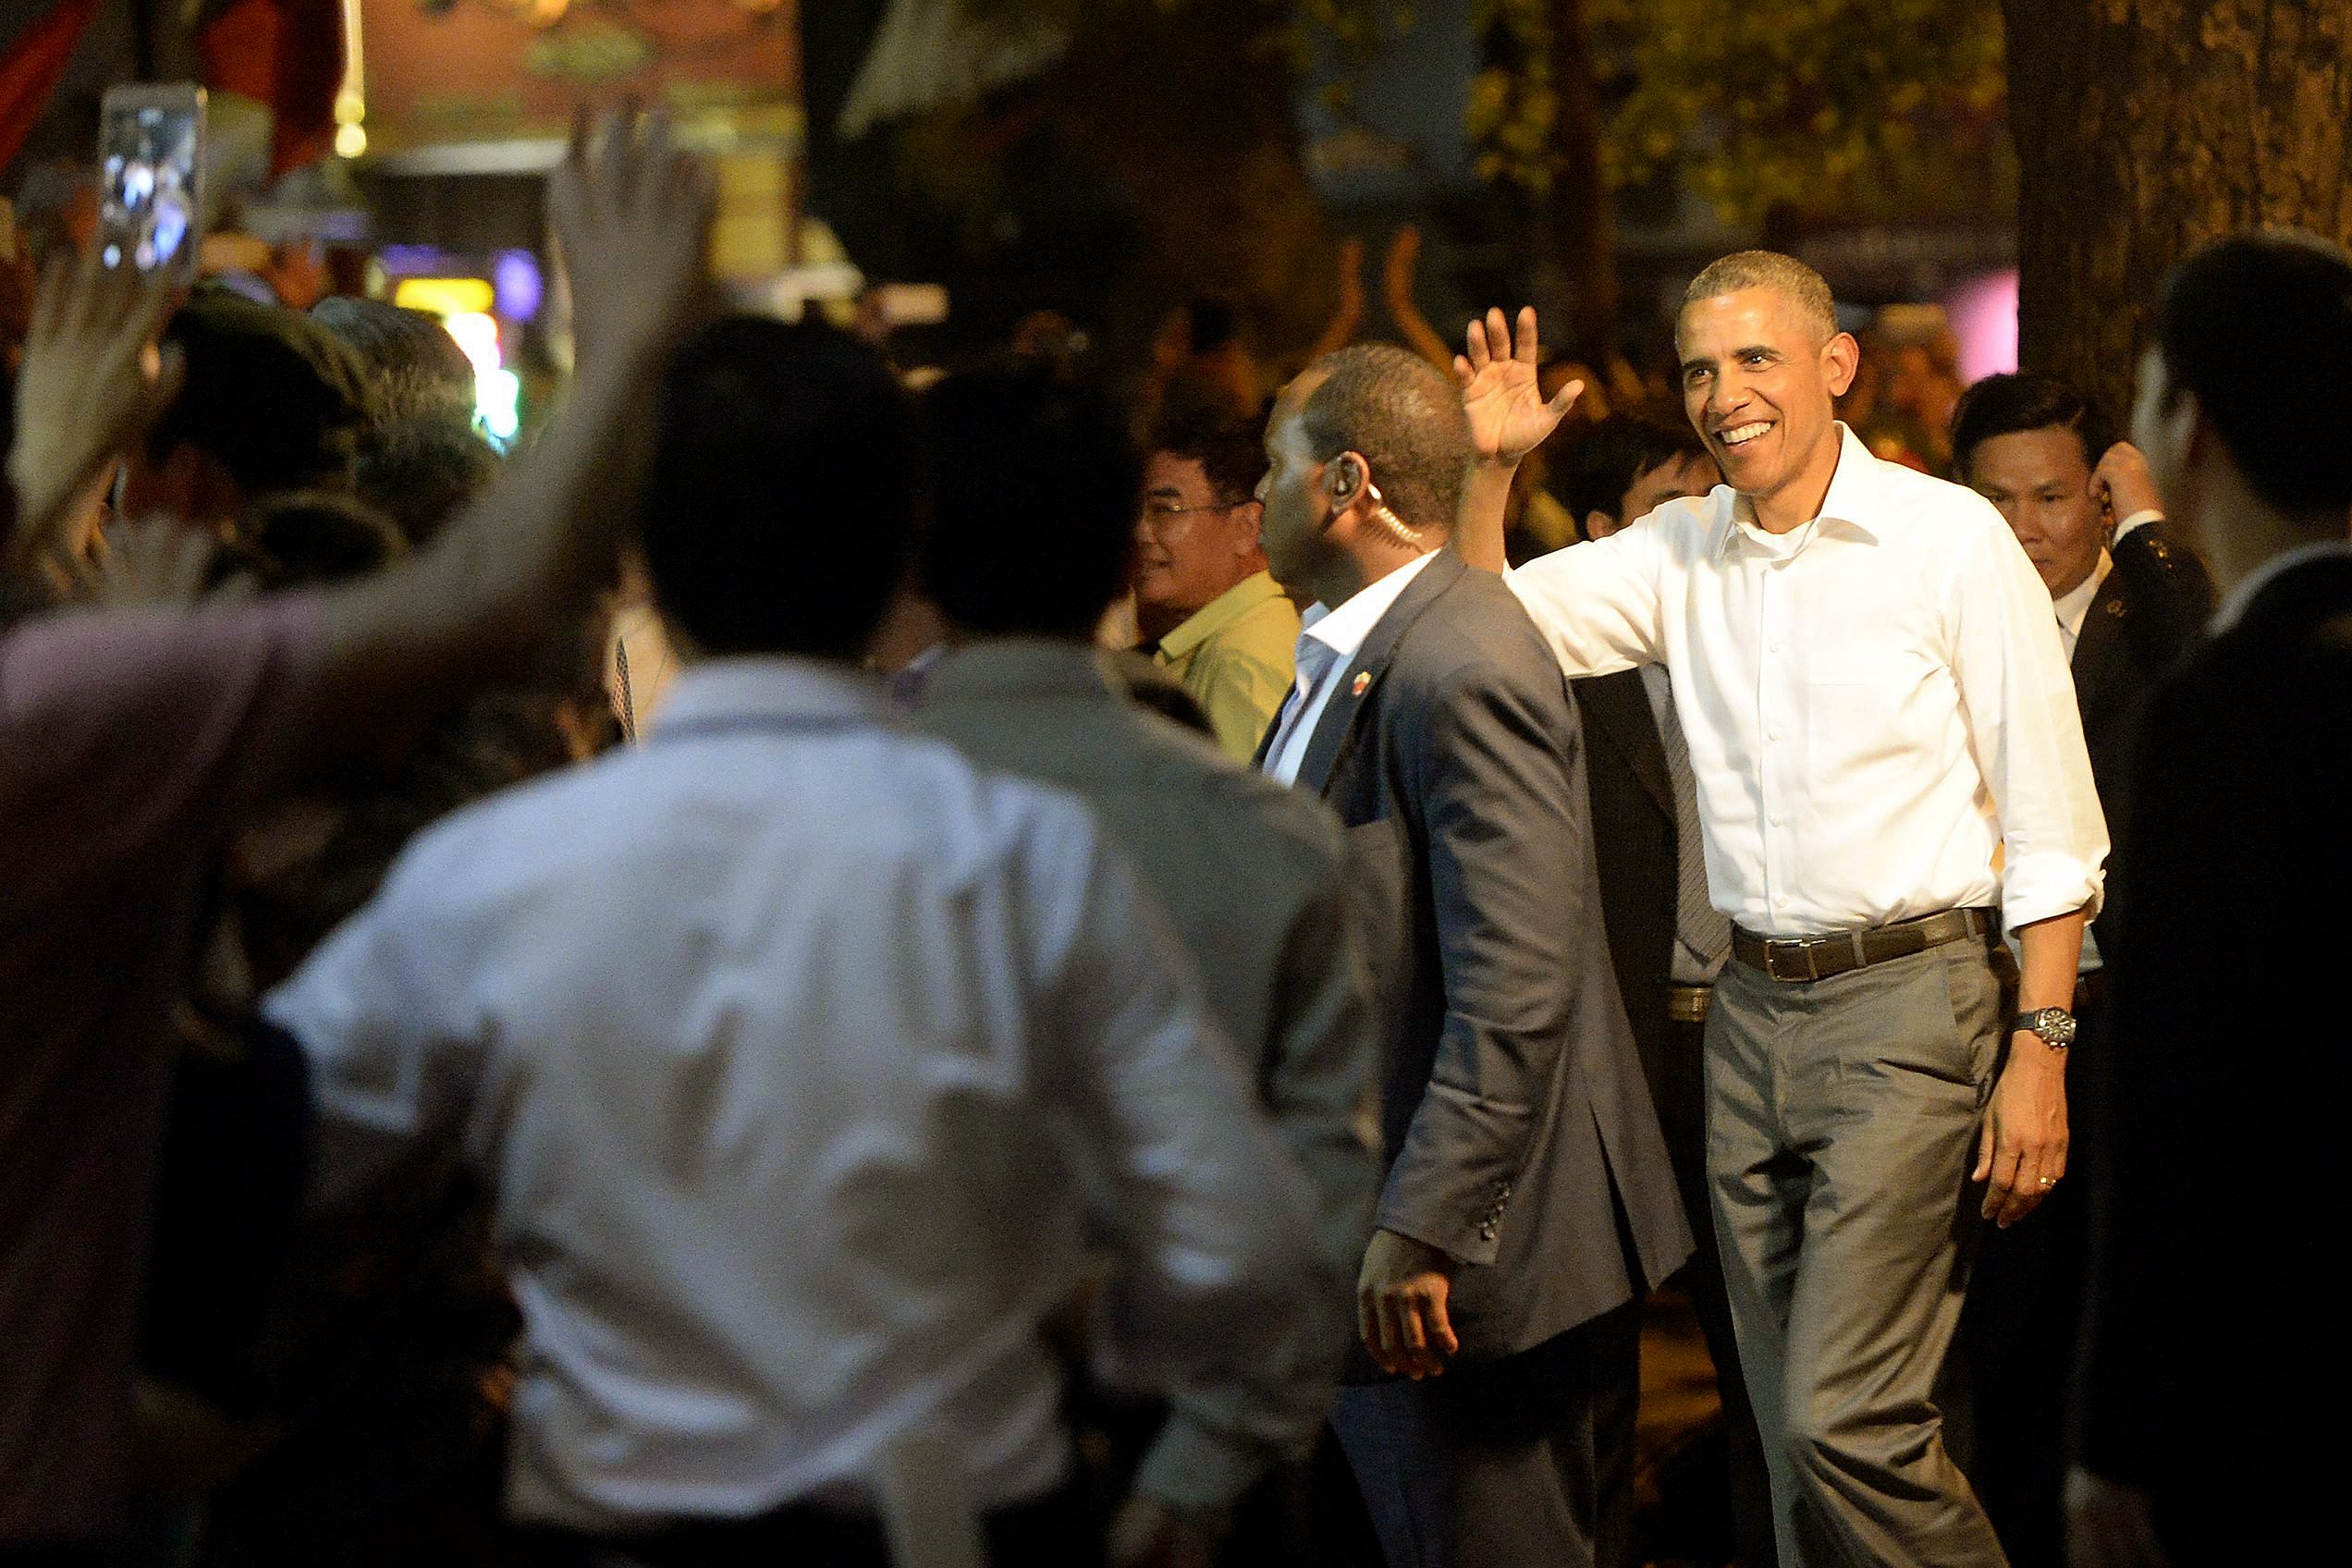 President Barack Obama  waves to local people as he enters a restaurant which serves bun cha, traditional Vietnamese dish of noodle and grilled pork, in Hanoi, Vietnam on May 23.